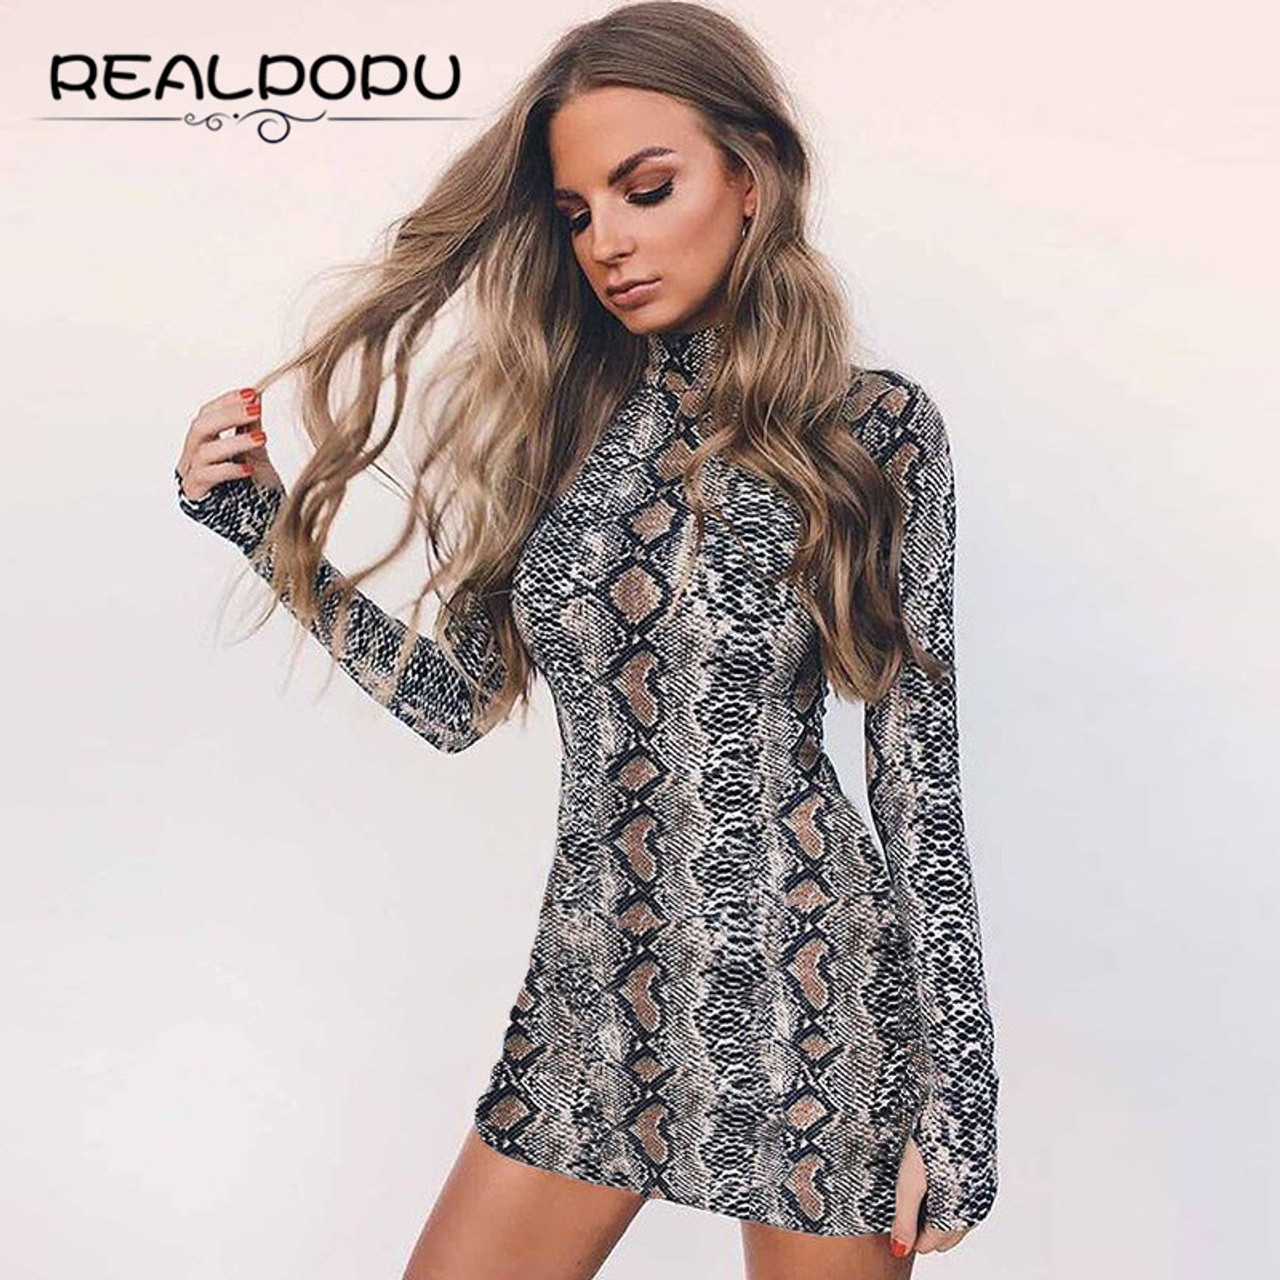 c07f3bdfb5b9 ... Realpopu snake skin Turtleneck Long Sleeve Bodysuit Sexy Bodycon Fashion  Romper Womens Jumpsuit Overall Knitted Combinaison ...